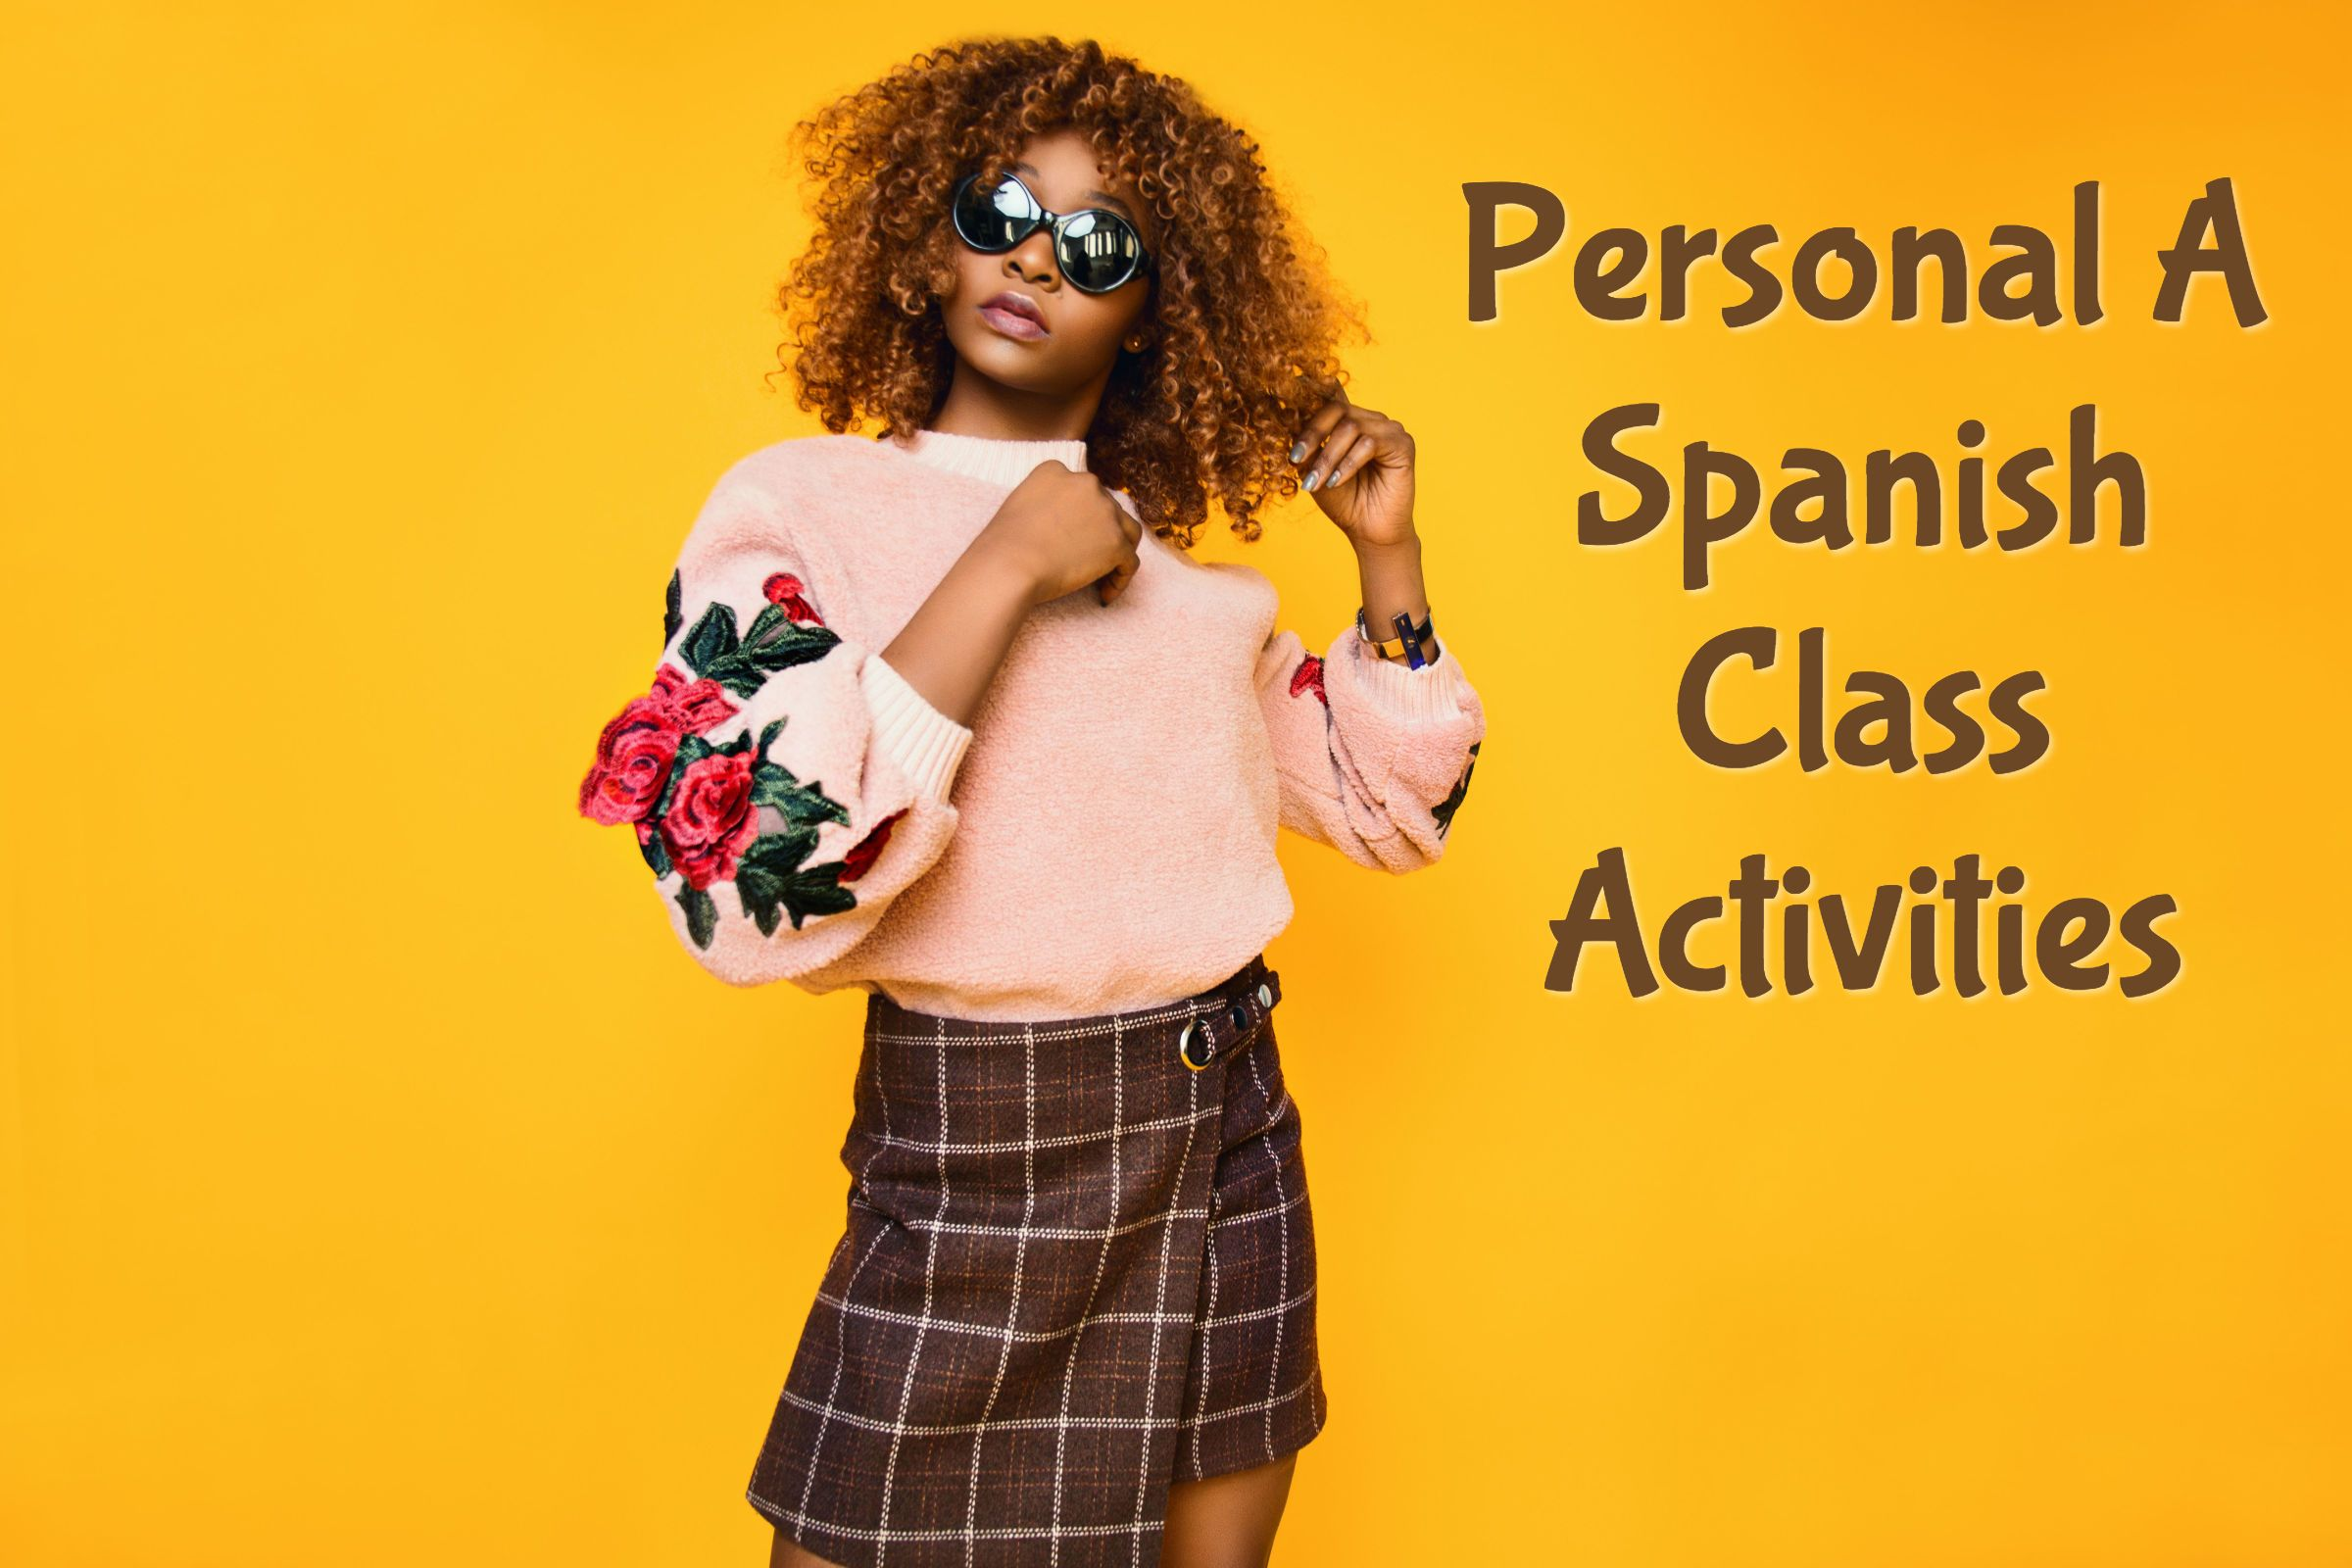 Personal A Spanish Class Activities